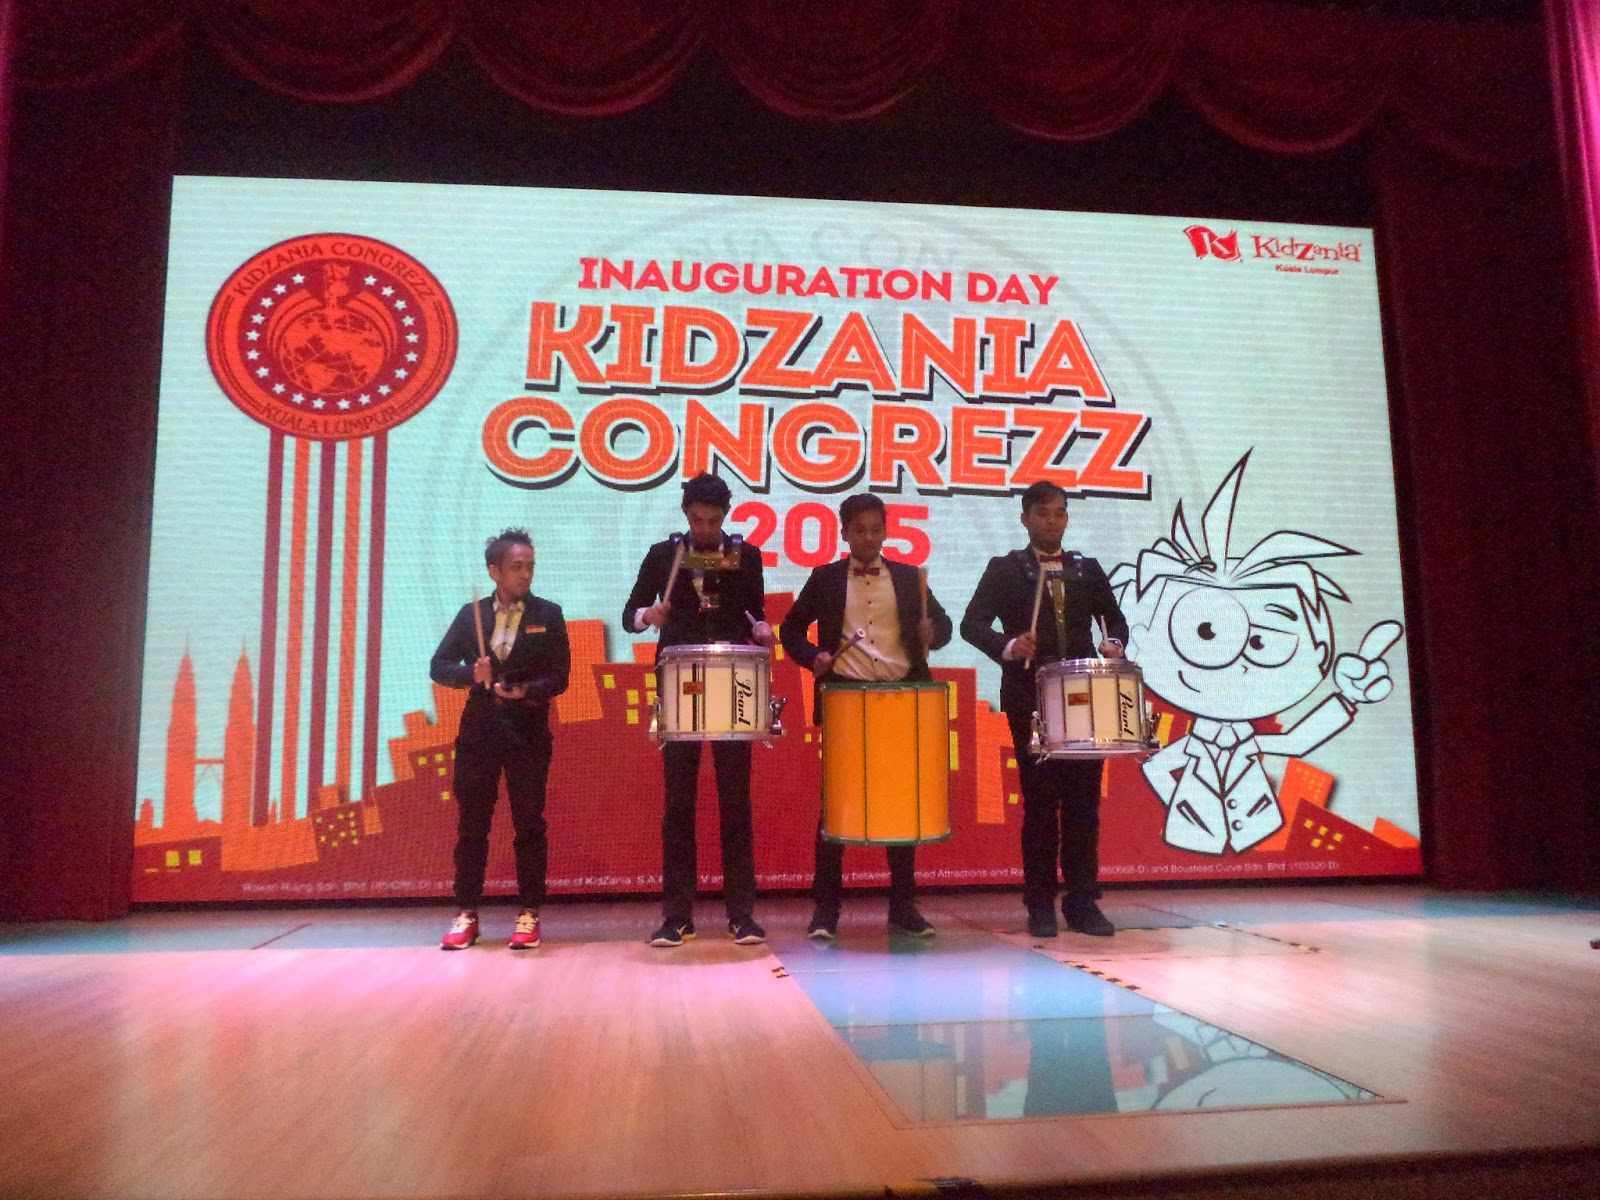 Drum performances followed by parade with CongreZZ Kids 2014 and New CongreZZ Kids 2015.